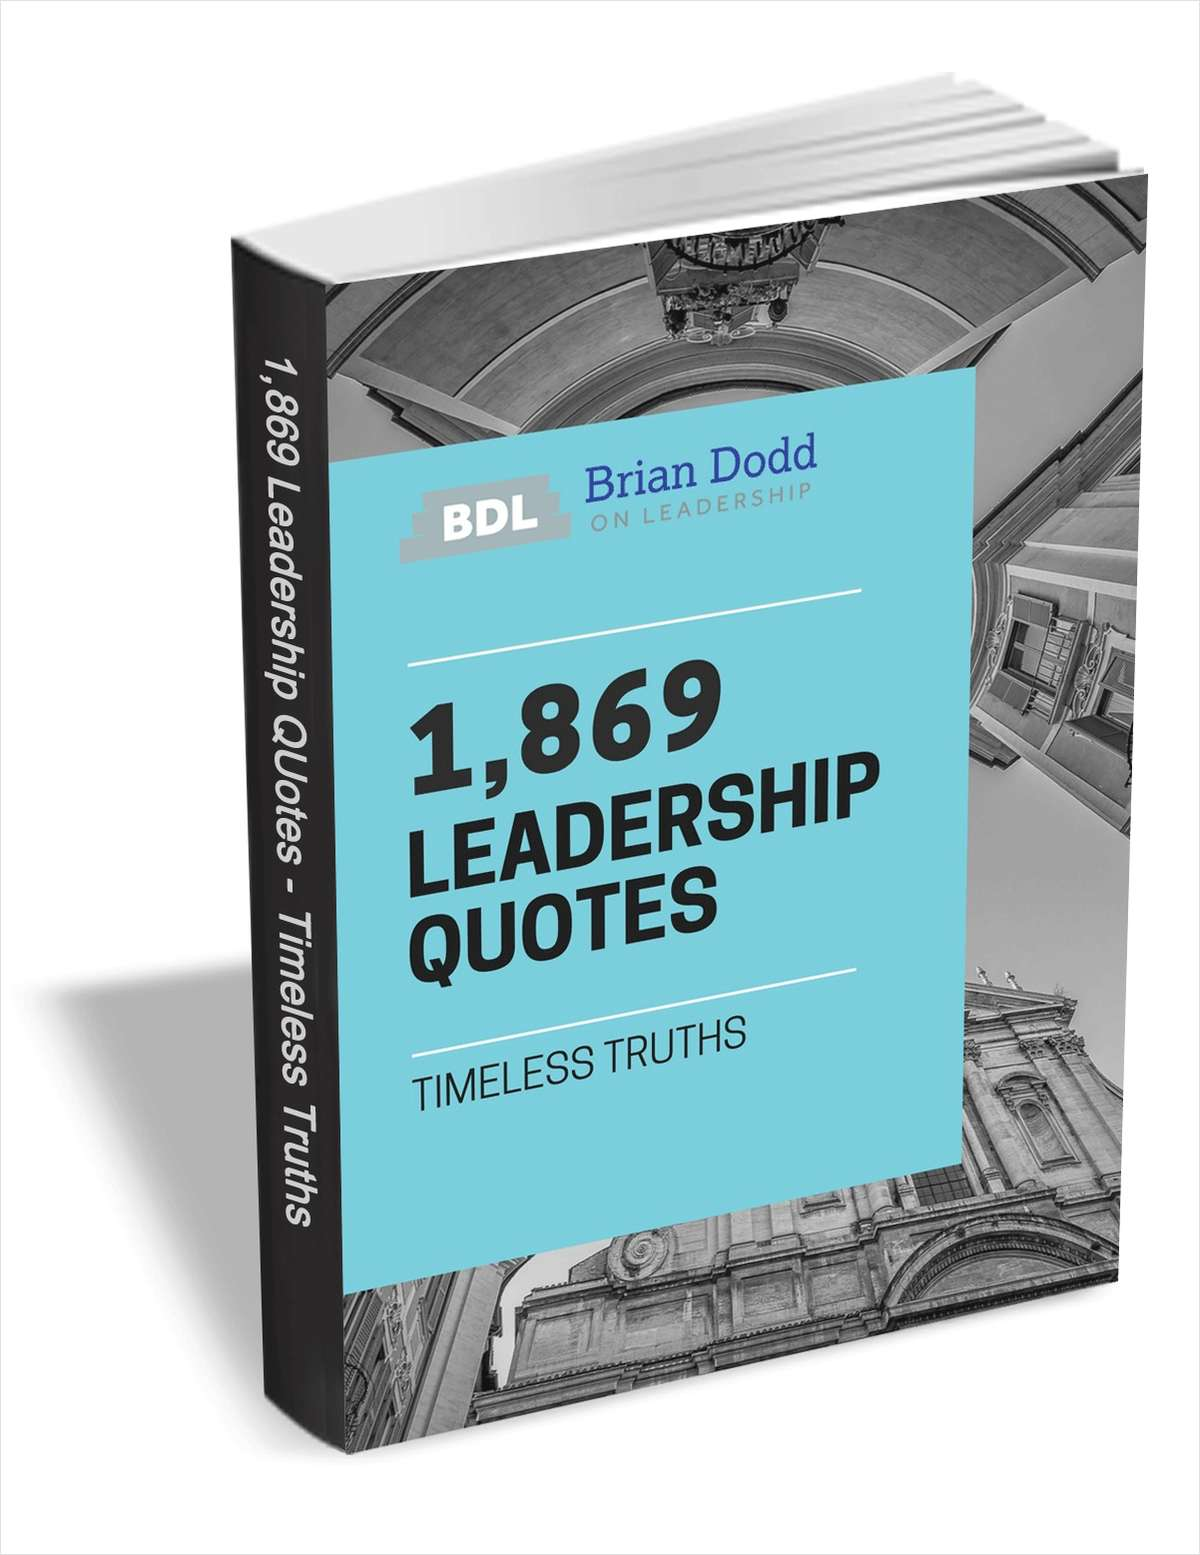 1,869 Leadership Quotes - Timeless Truths